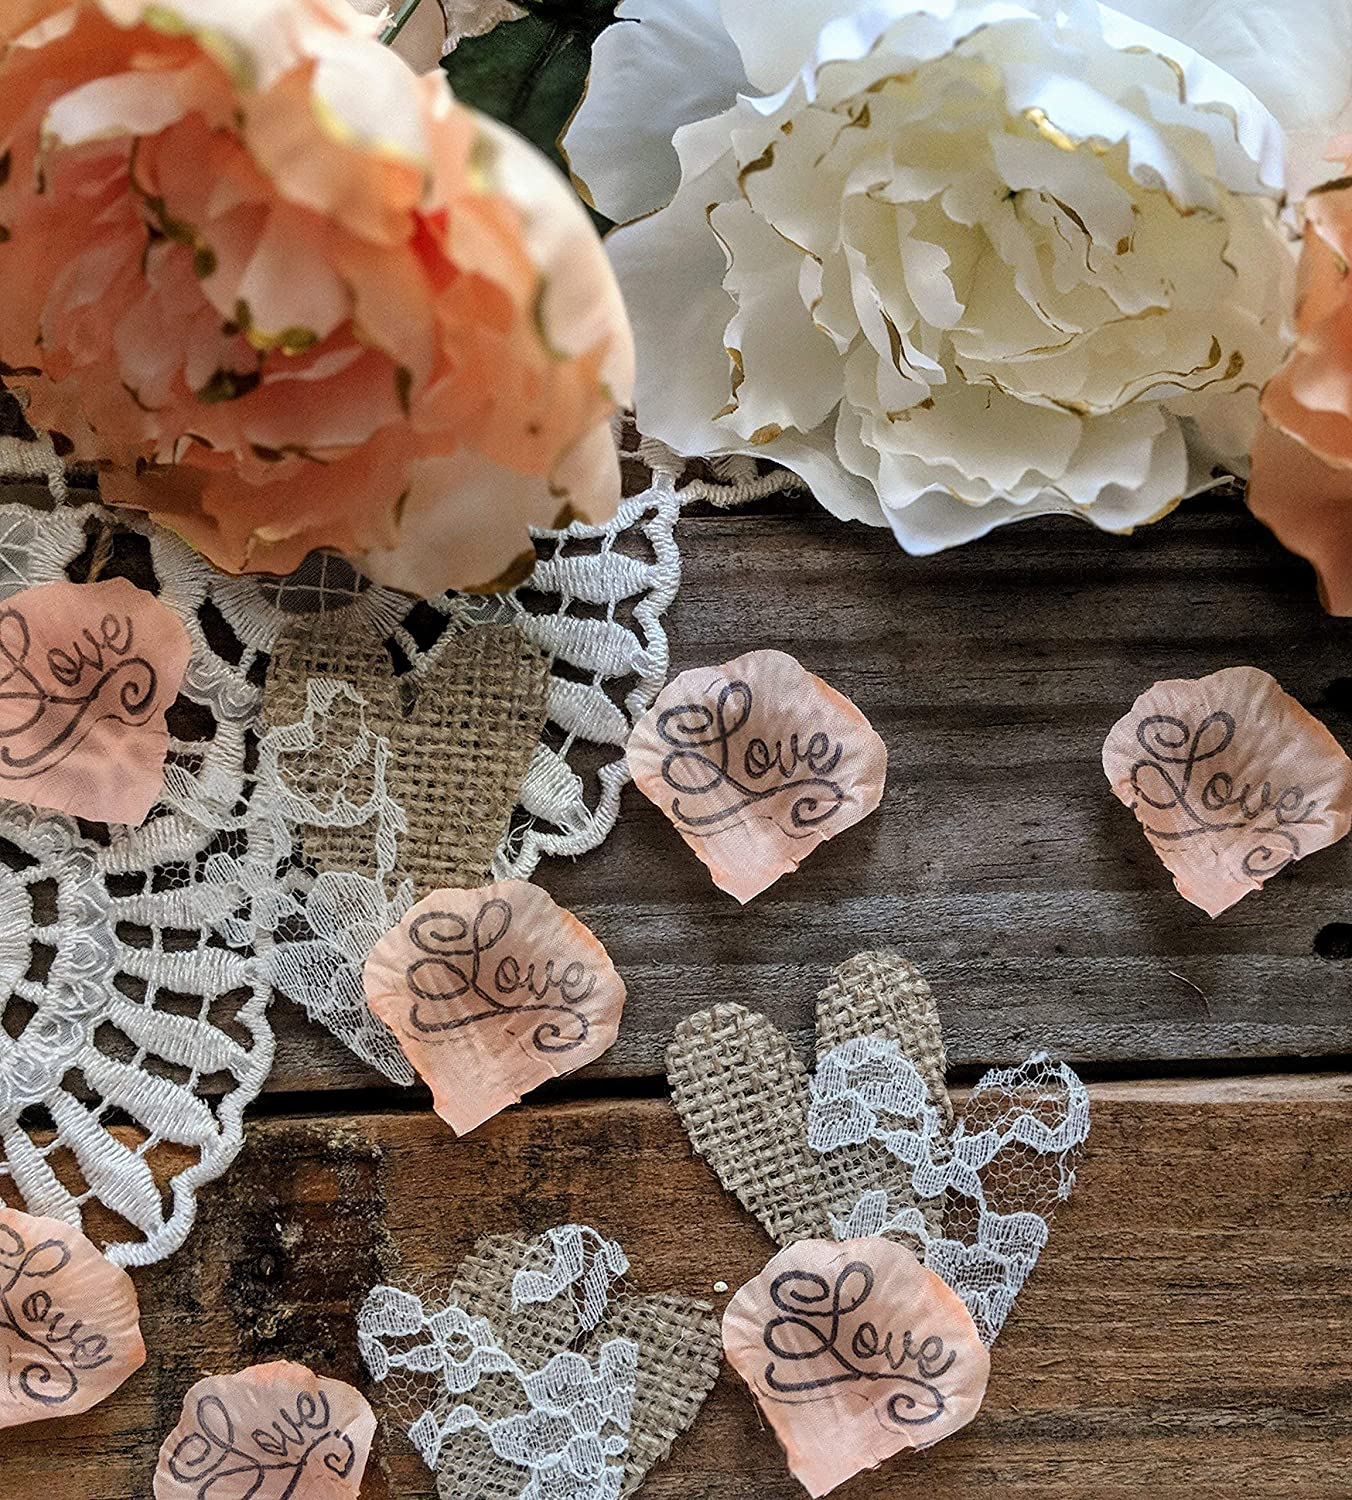 Rustic Wedding Table Decorations Rustic Bridal Shower Decor Burlap And Lace Heart Confetti Sweetheart Table Decor